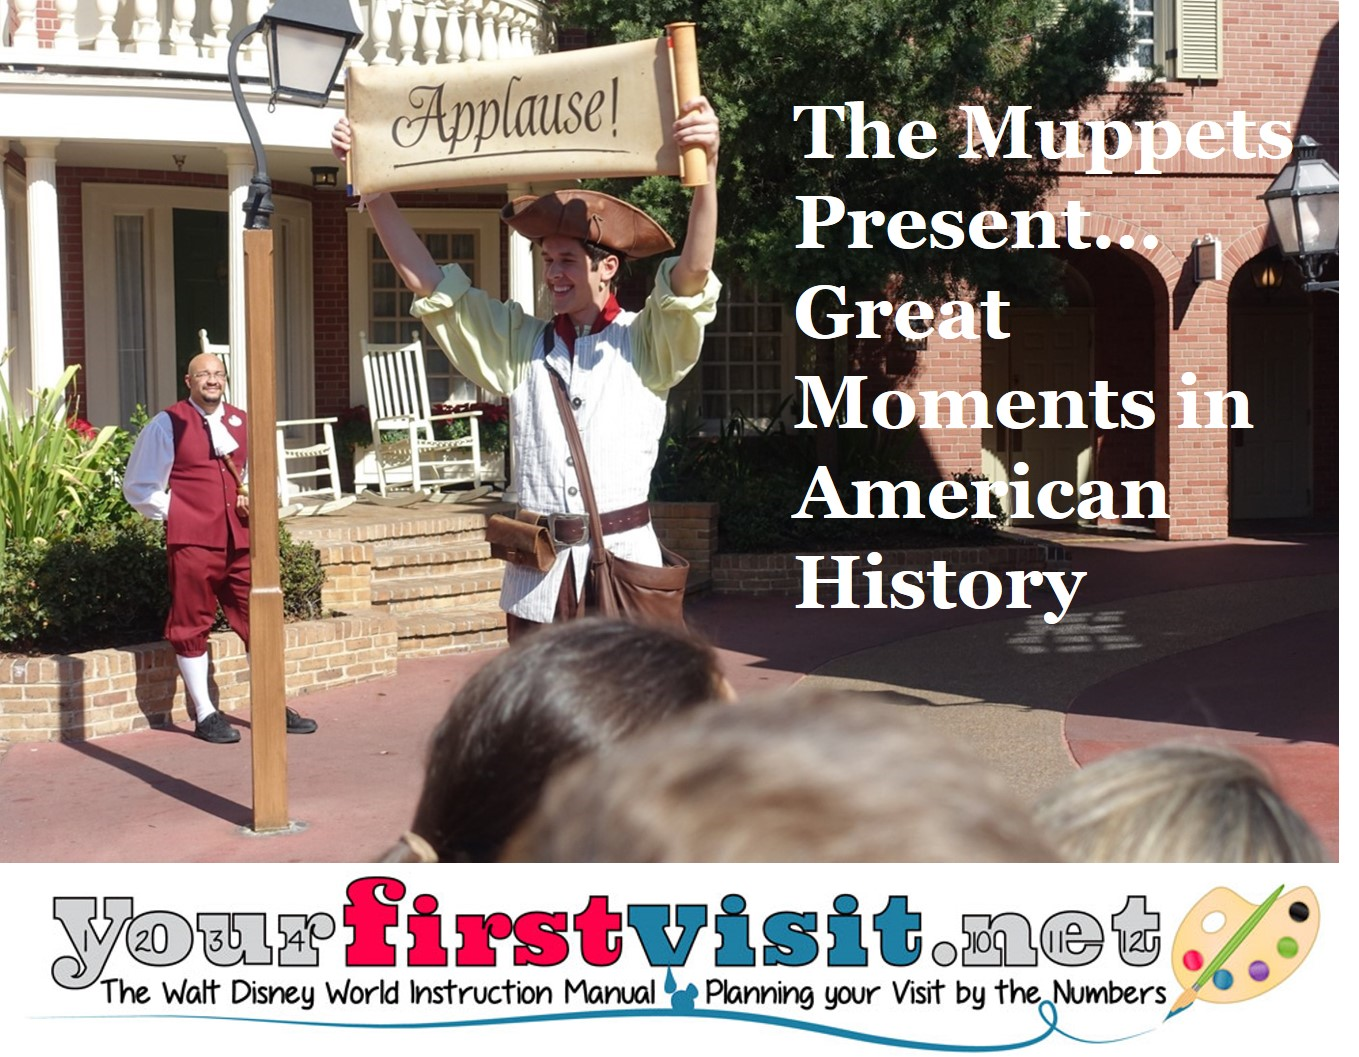 Review: The Muppets Show in Liberty Square - yourfirstvisit net